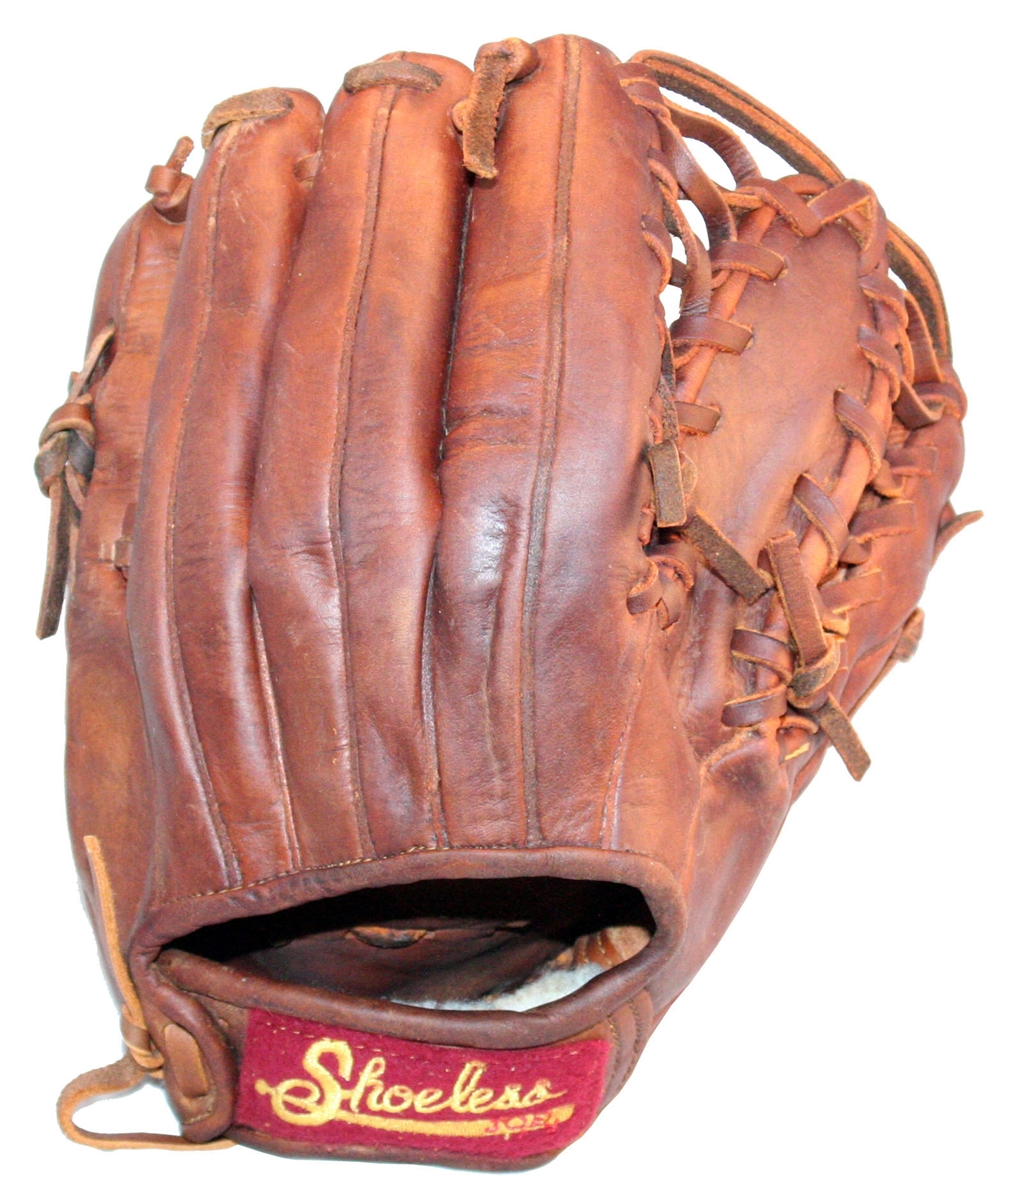 Shoeless Joe 11.5 Baseball Glove 1150SF (Right Hand Throw) : Shoeless Joe provides any infielders, especially a middle infielder, 4 Web choices in a 11 12 inch ball glove. Regardless if the player chooses the Modified Trap, Six Finger, I Web or H Web glove, it will feel like a true extension of the hand. These gloves are designed to let the player catch any fly or ground ball, and make a quick transition to the throwing hand. So that a player can quickly take their glove to the field, the Shoeless Joe11 12 gloves are made with 100% Tobacco tanned steer hide, and are hand laced and oiled and require very little break in time.